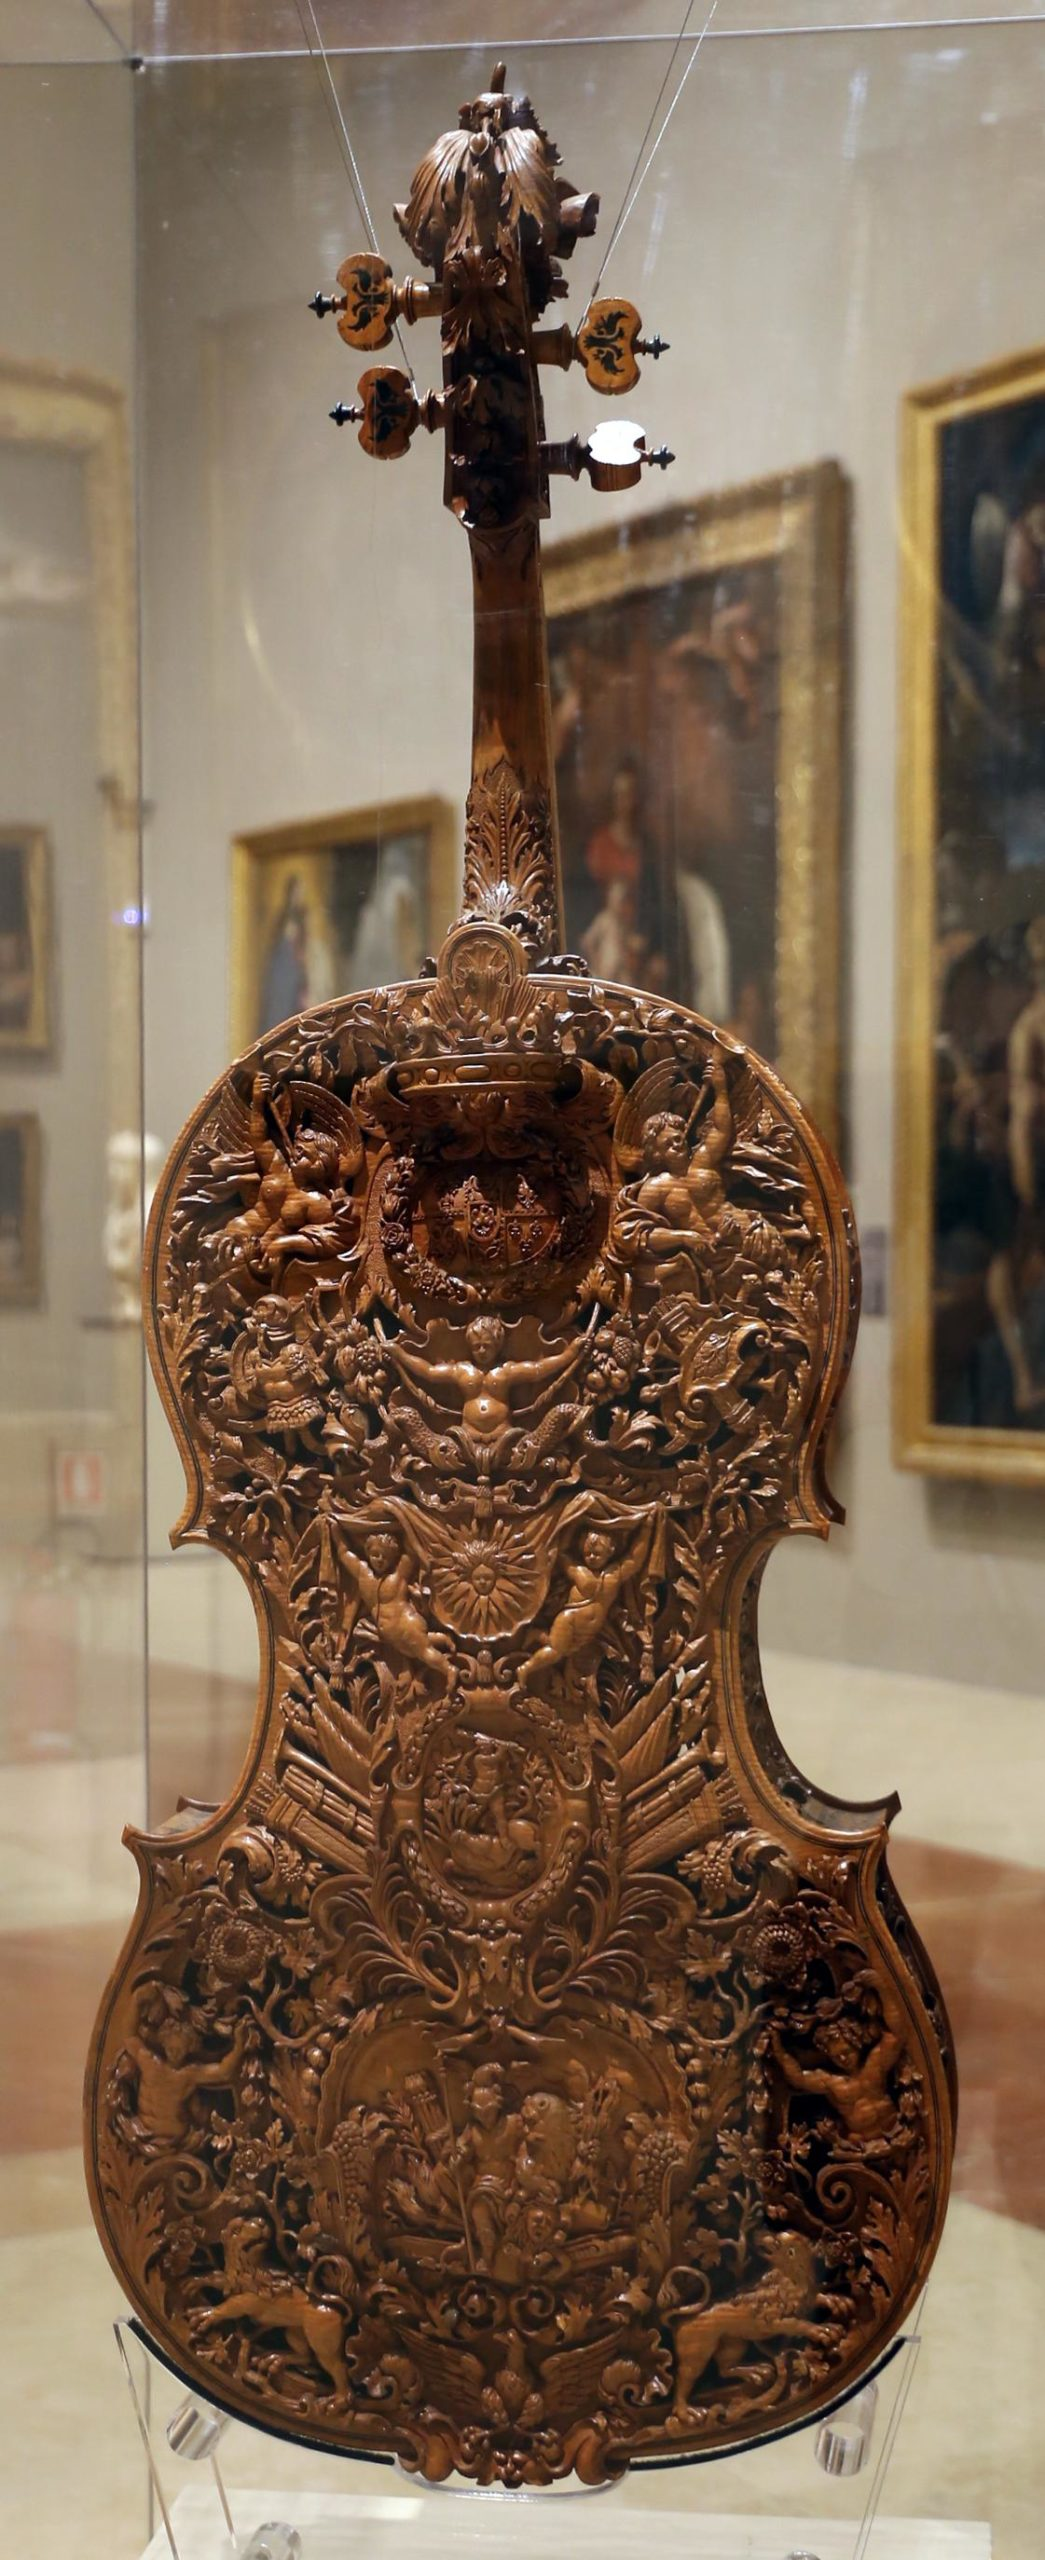 The intricately carved violin of Domenico Galli, made in 1687